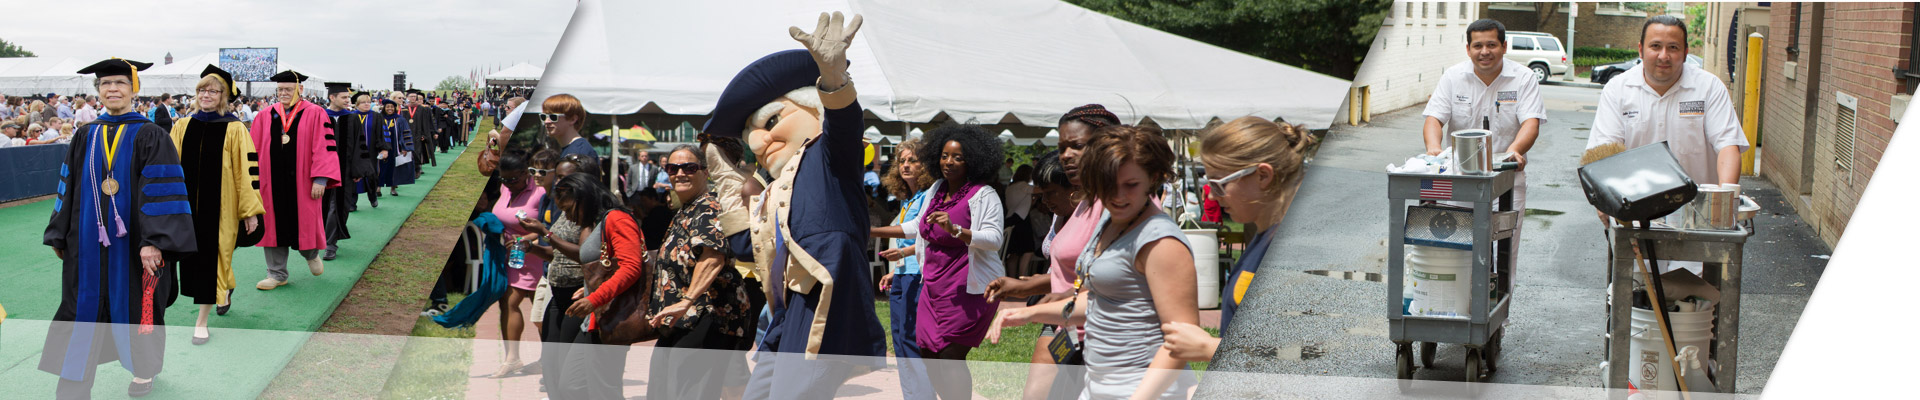 Faculty at Commencement; Staff at the Proud to be GW festival; gw staff heading to work